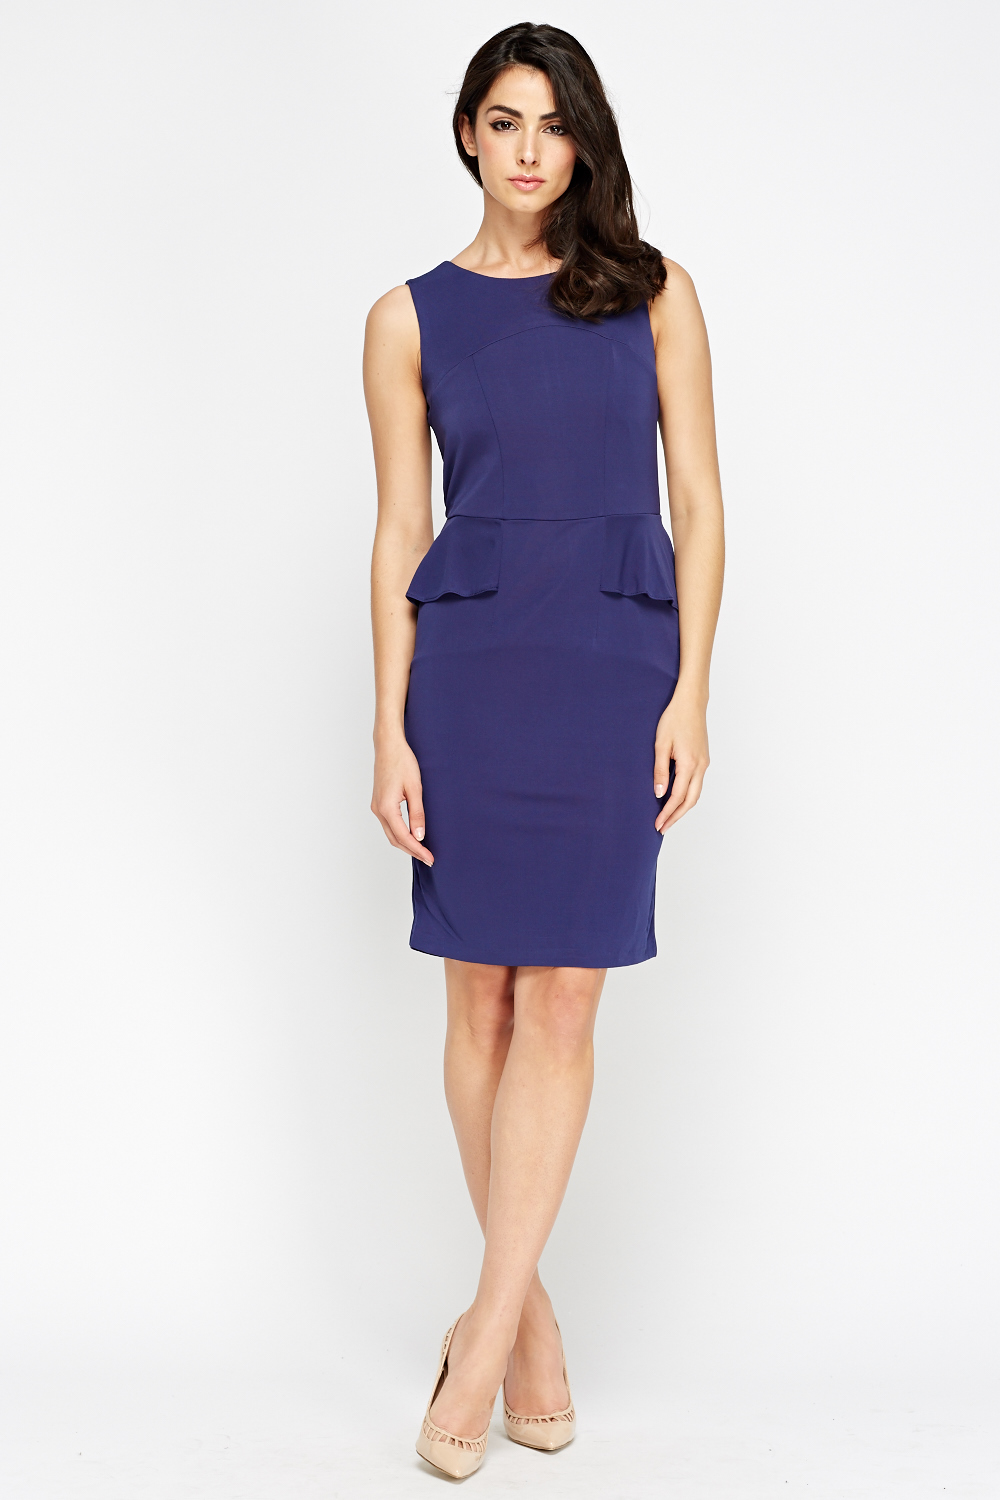 Shop black waist peplum dress at Neiman Marcus, where you will find free shipping on the latest in fashion from top designers. Skip To Main Content. SAVE 25% ON REGULAR PRICES! CHIC WEEK. JEWELRY SALE! SAVE 20% WITH CODE JEWEL HOME SALE: SAVE 20%. Available in Black, Blue, Red.